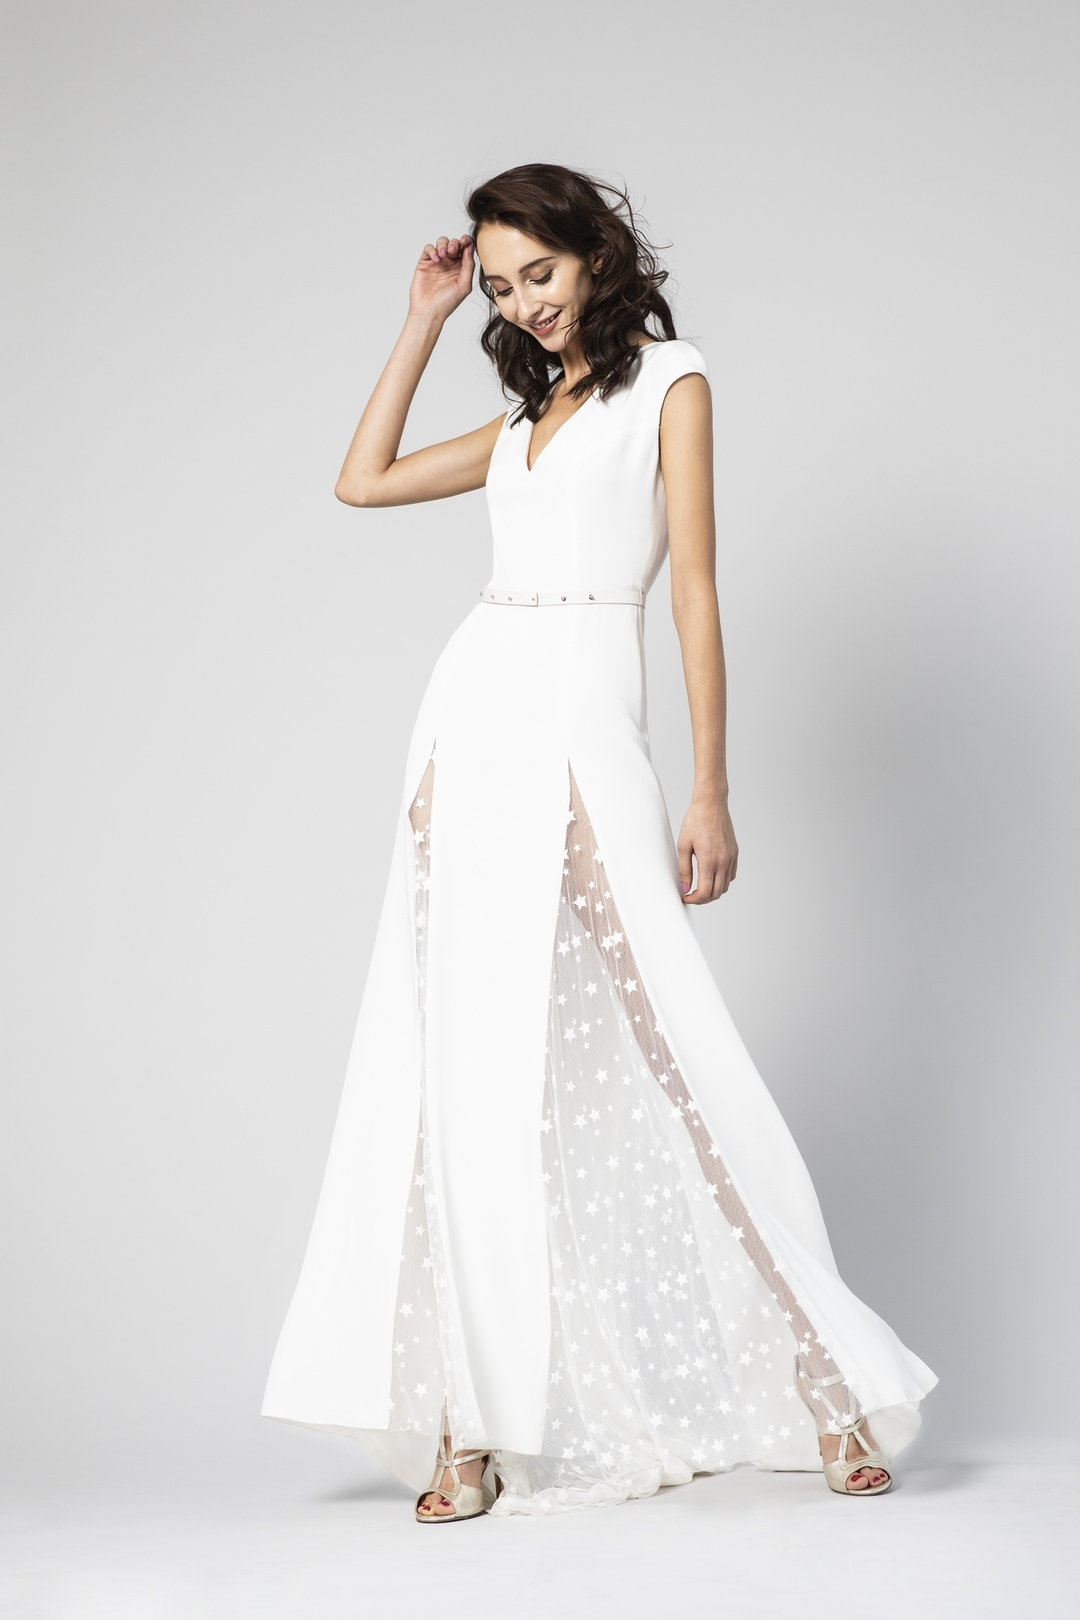 be special dress photo